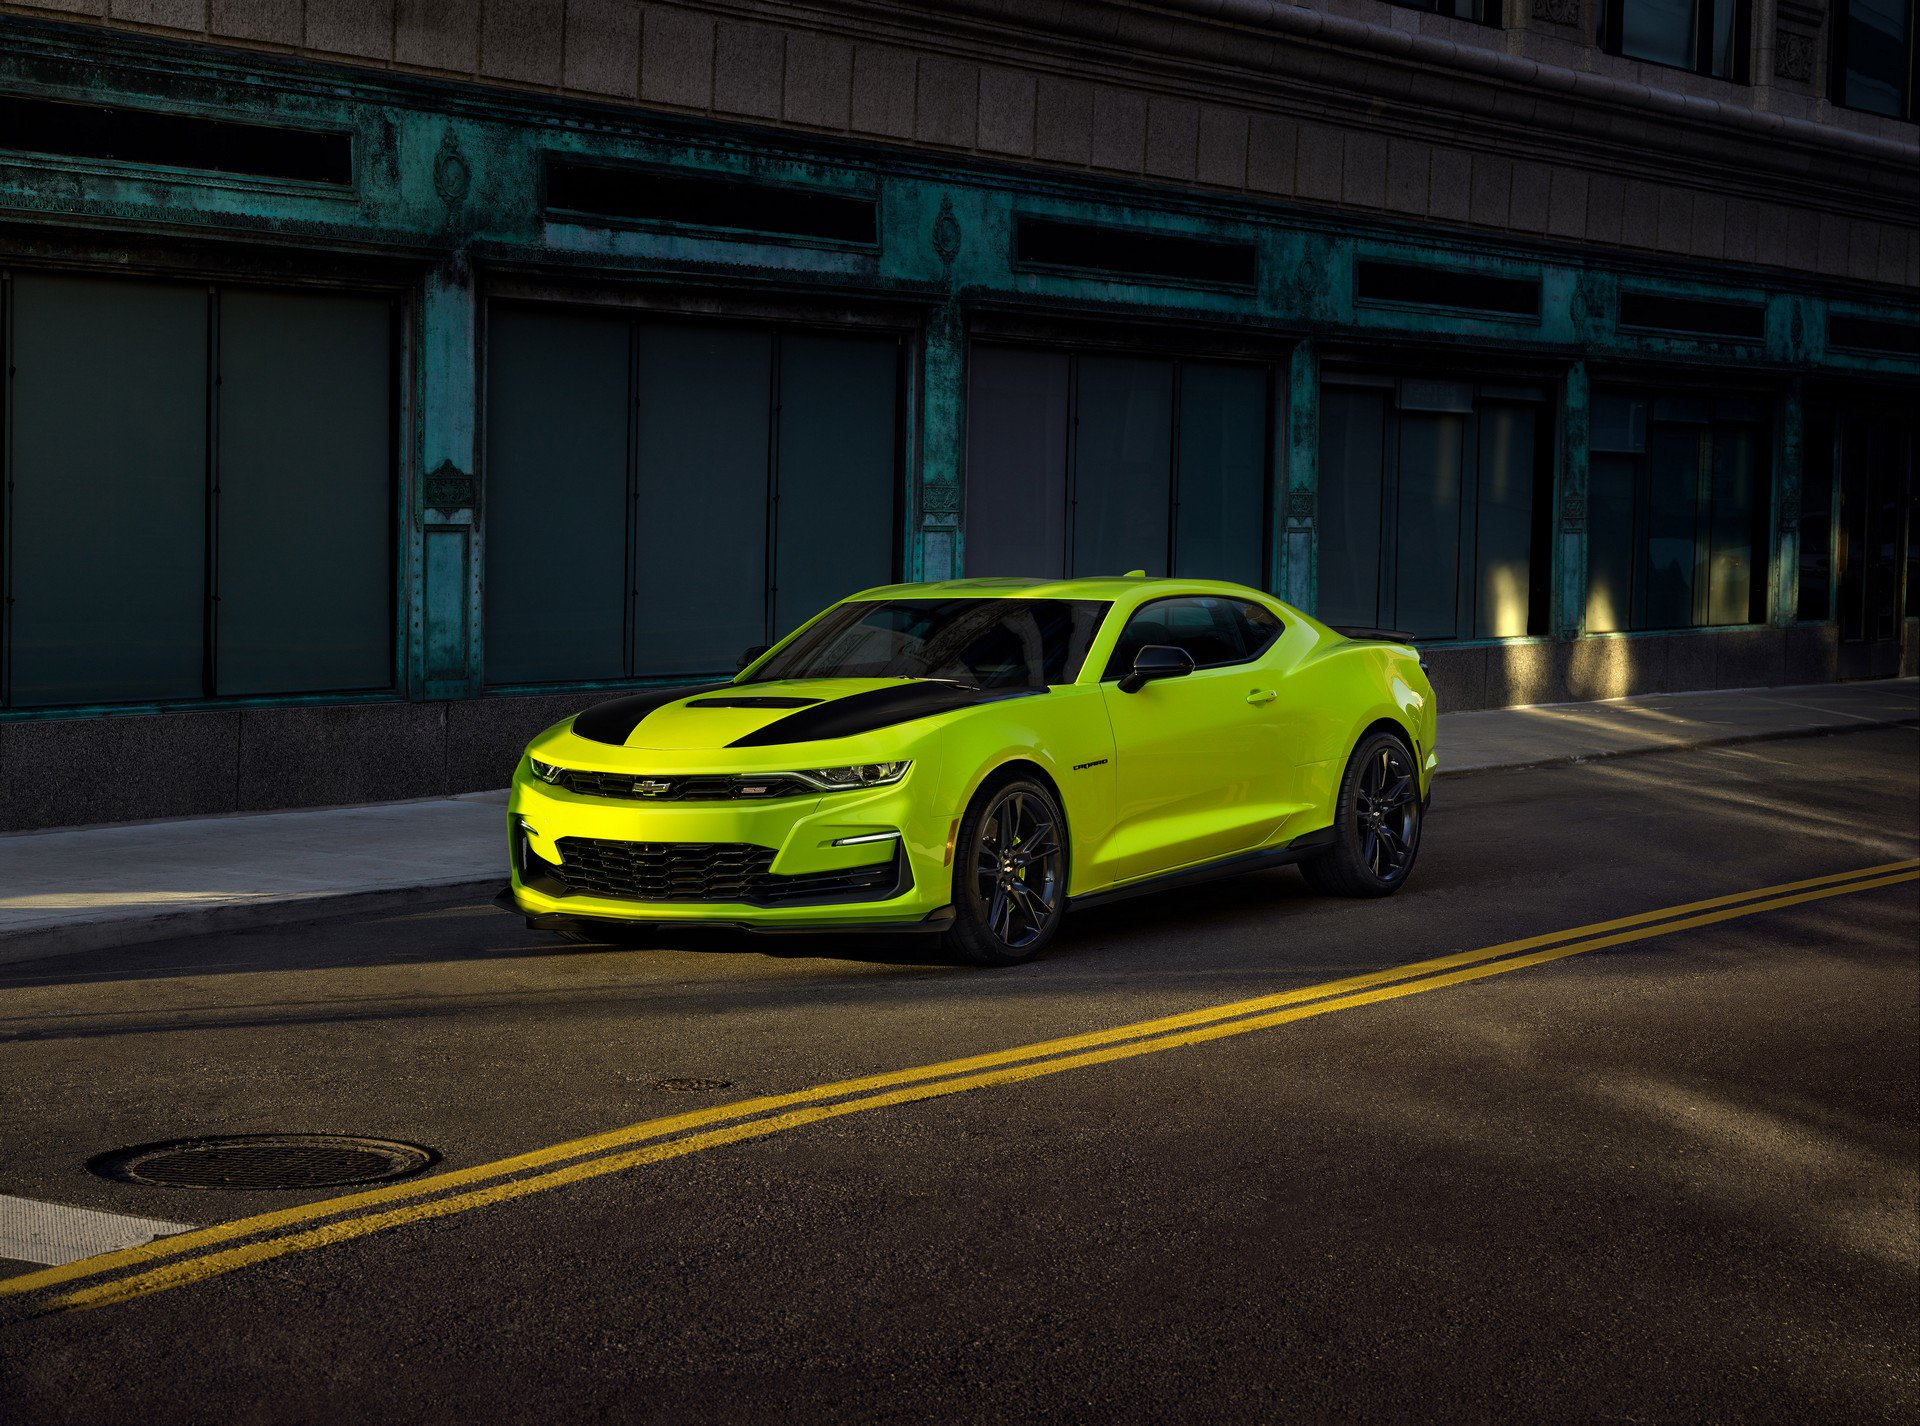 45 New 2020 The Camaro Ss Images